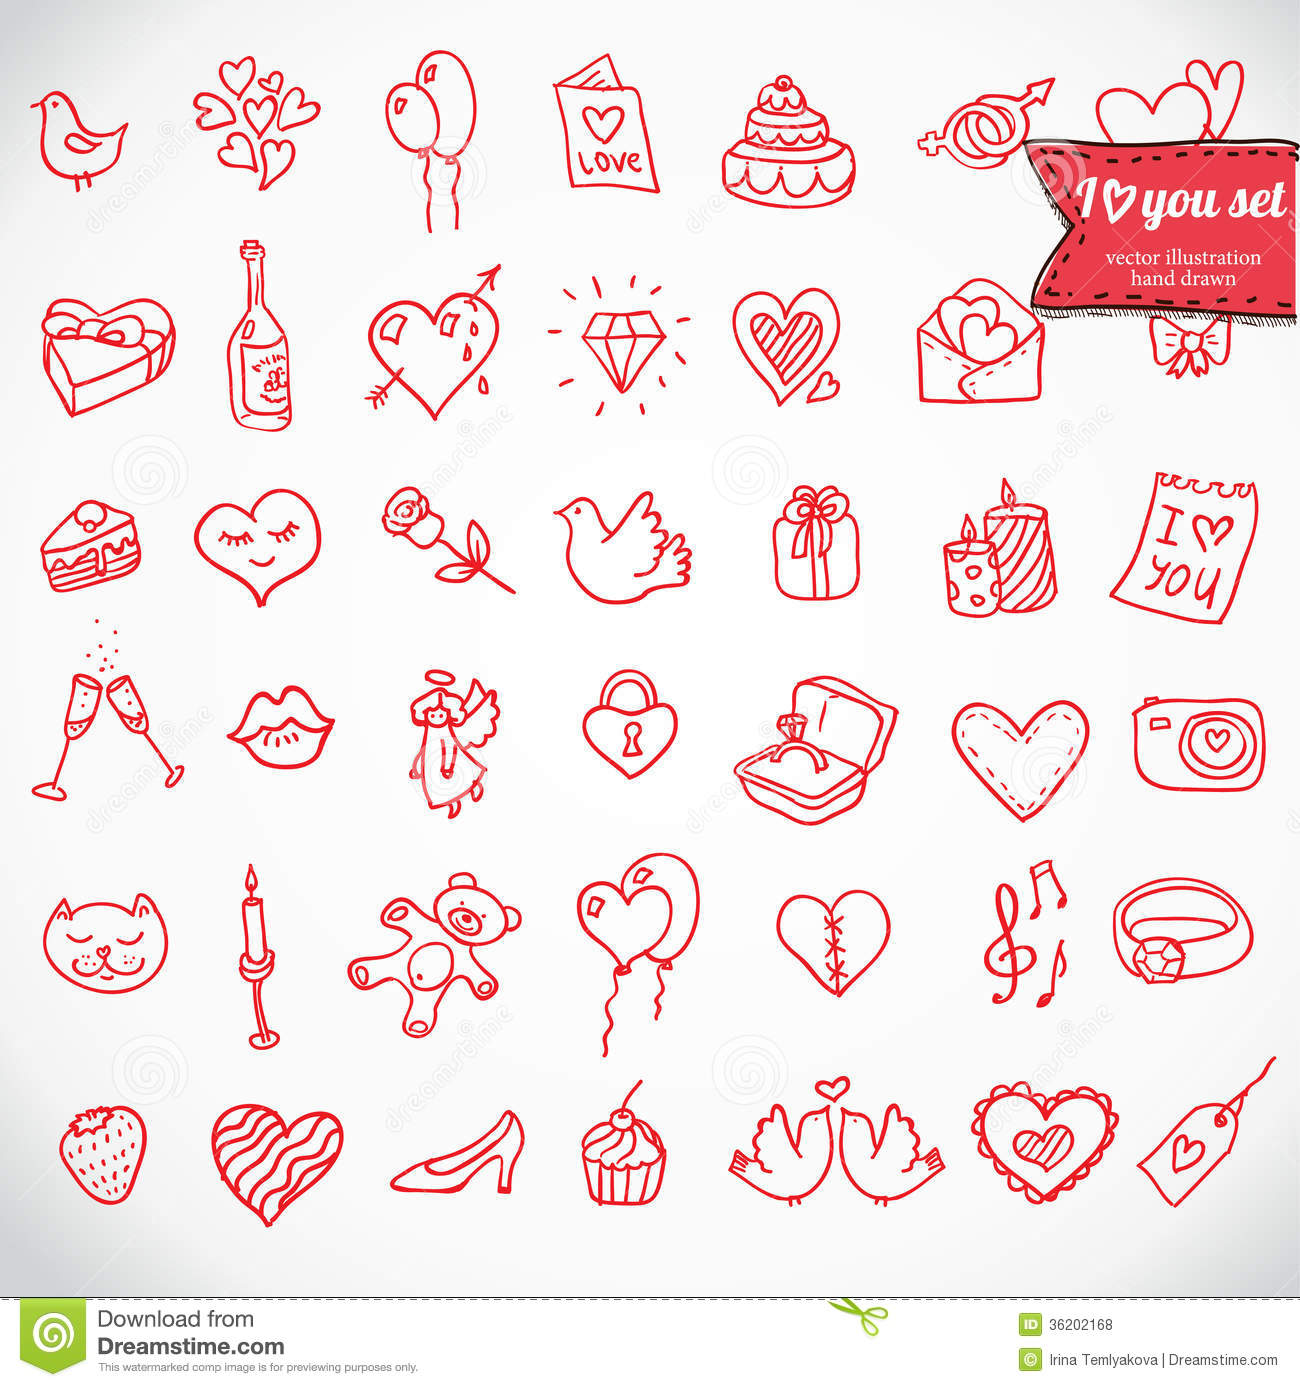 doodle icon set isolated i love you vector illustration hand drawn 36202168